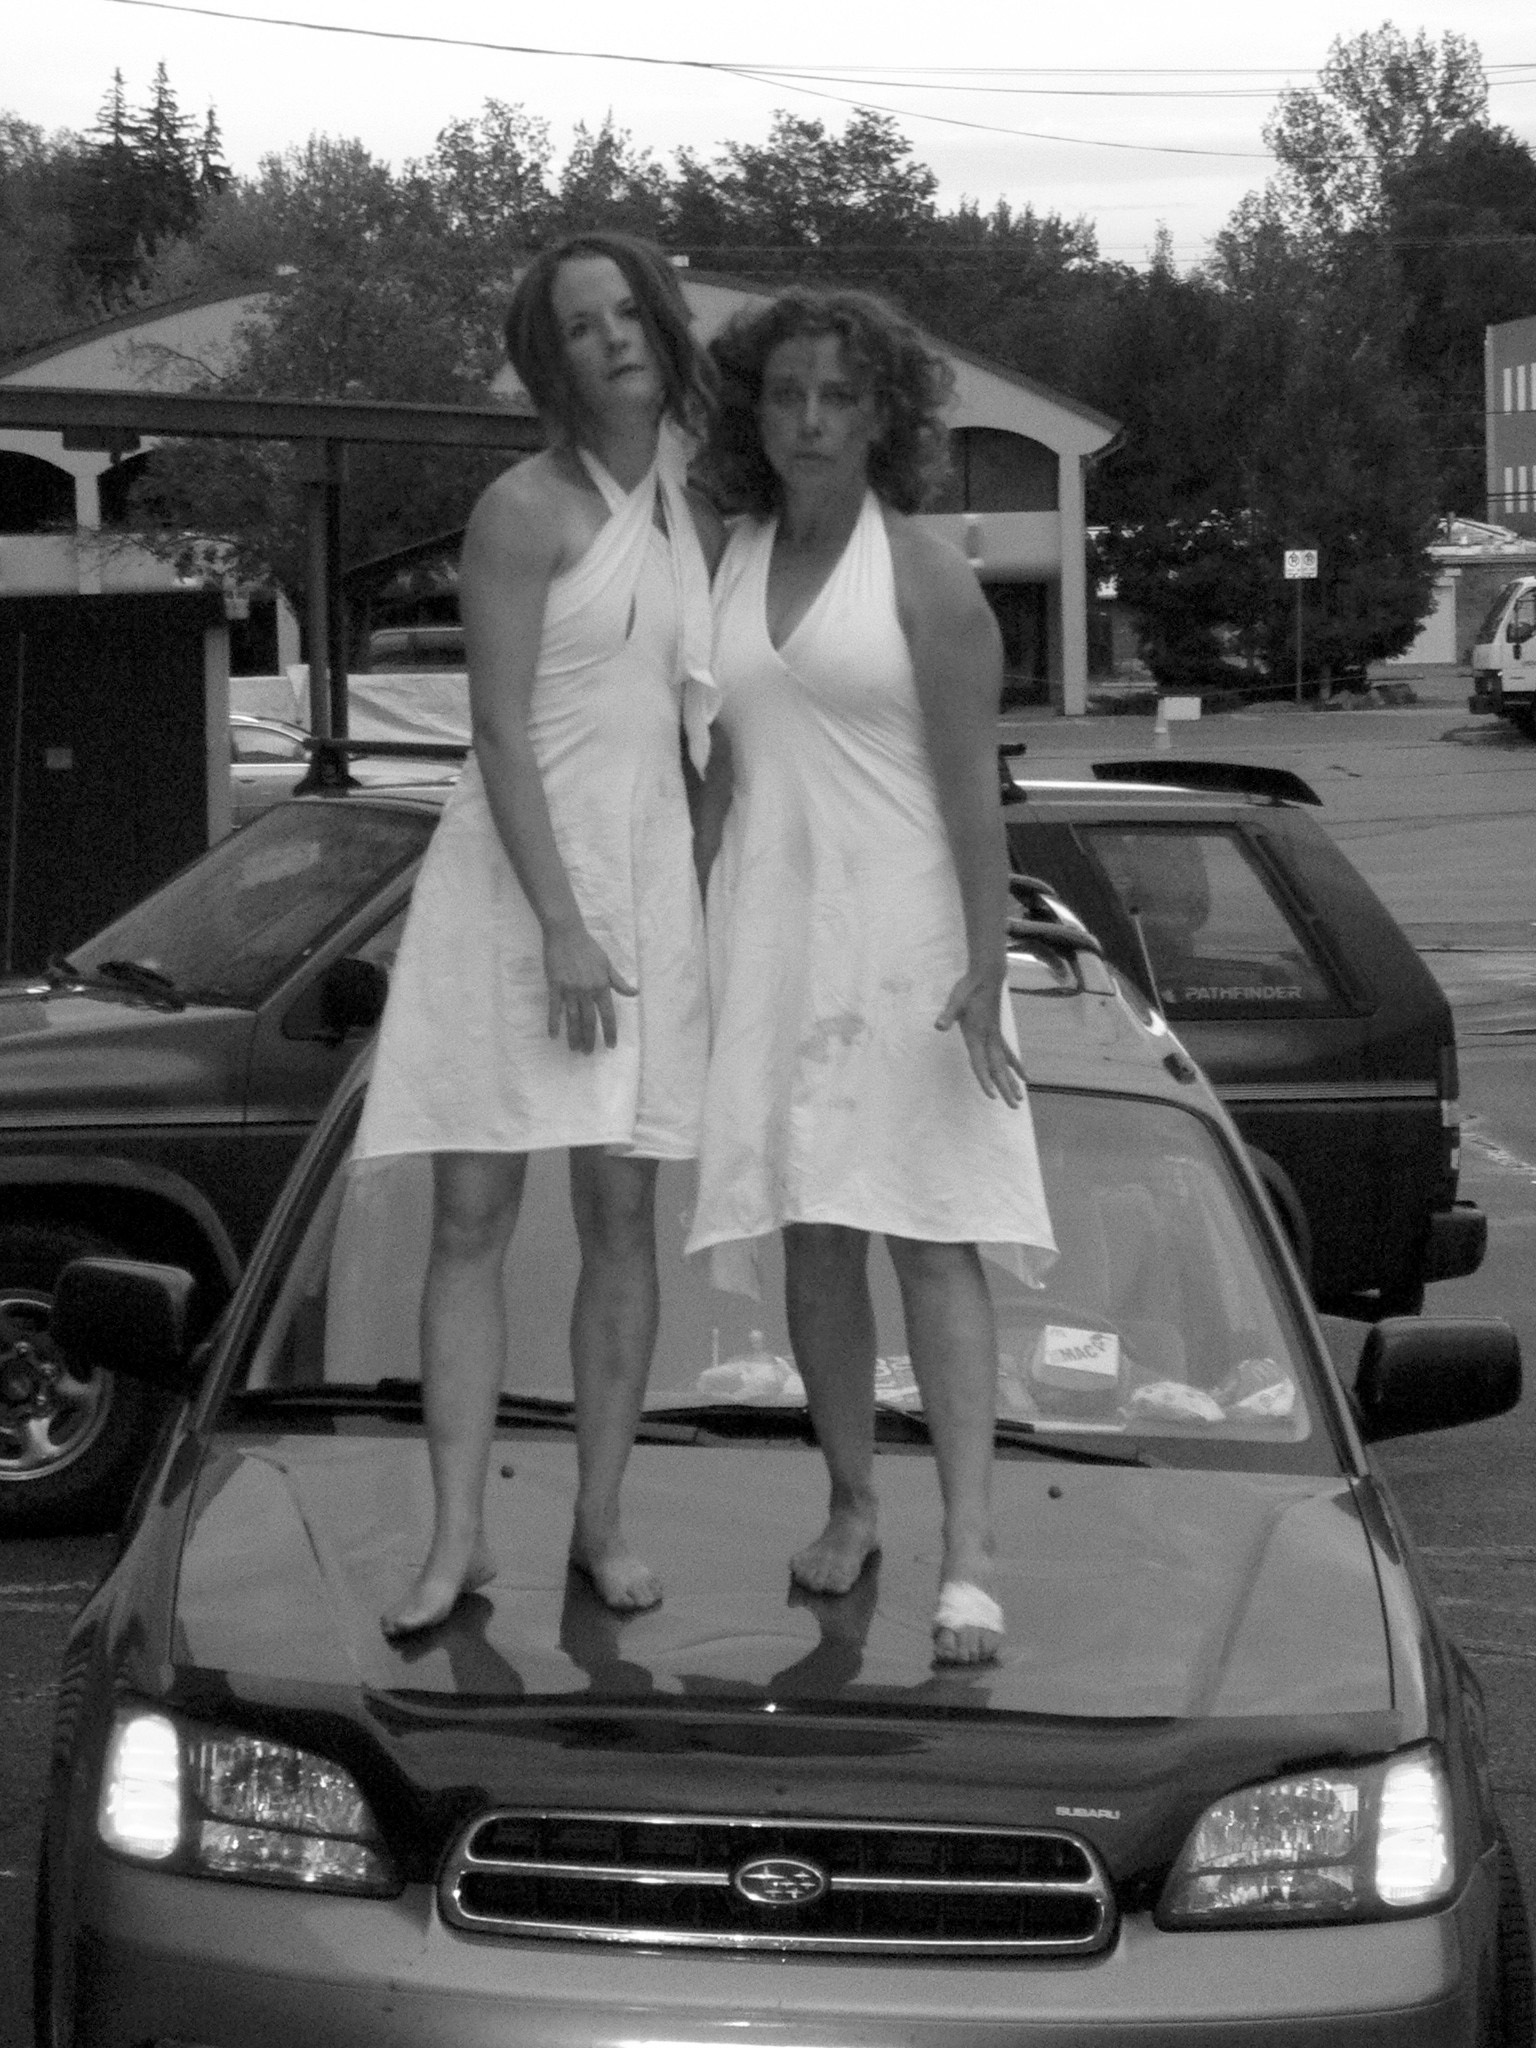 """Under the Hood - A Site-Specific work that takes place on a 2001 Subaru Outback created and performed by Breanna Rogers and Joanna RotkinThe Boulder International Fringe Festival,2007: Under The Hood wins """"Pick of The Fringe"""" for most innovative performance.photo by Glen Kalen 2008"""